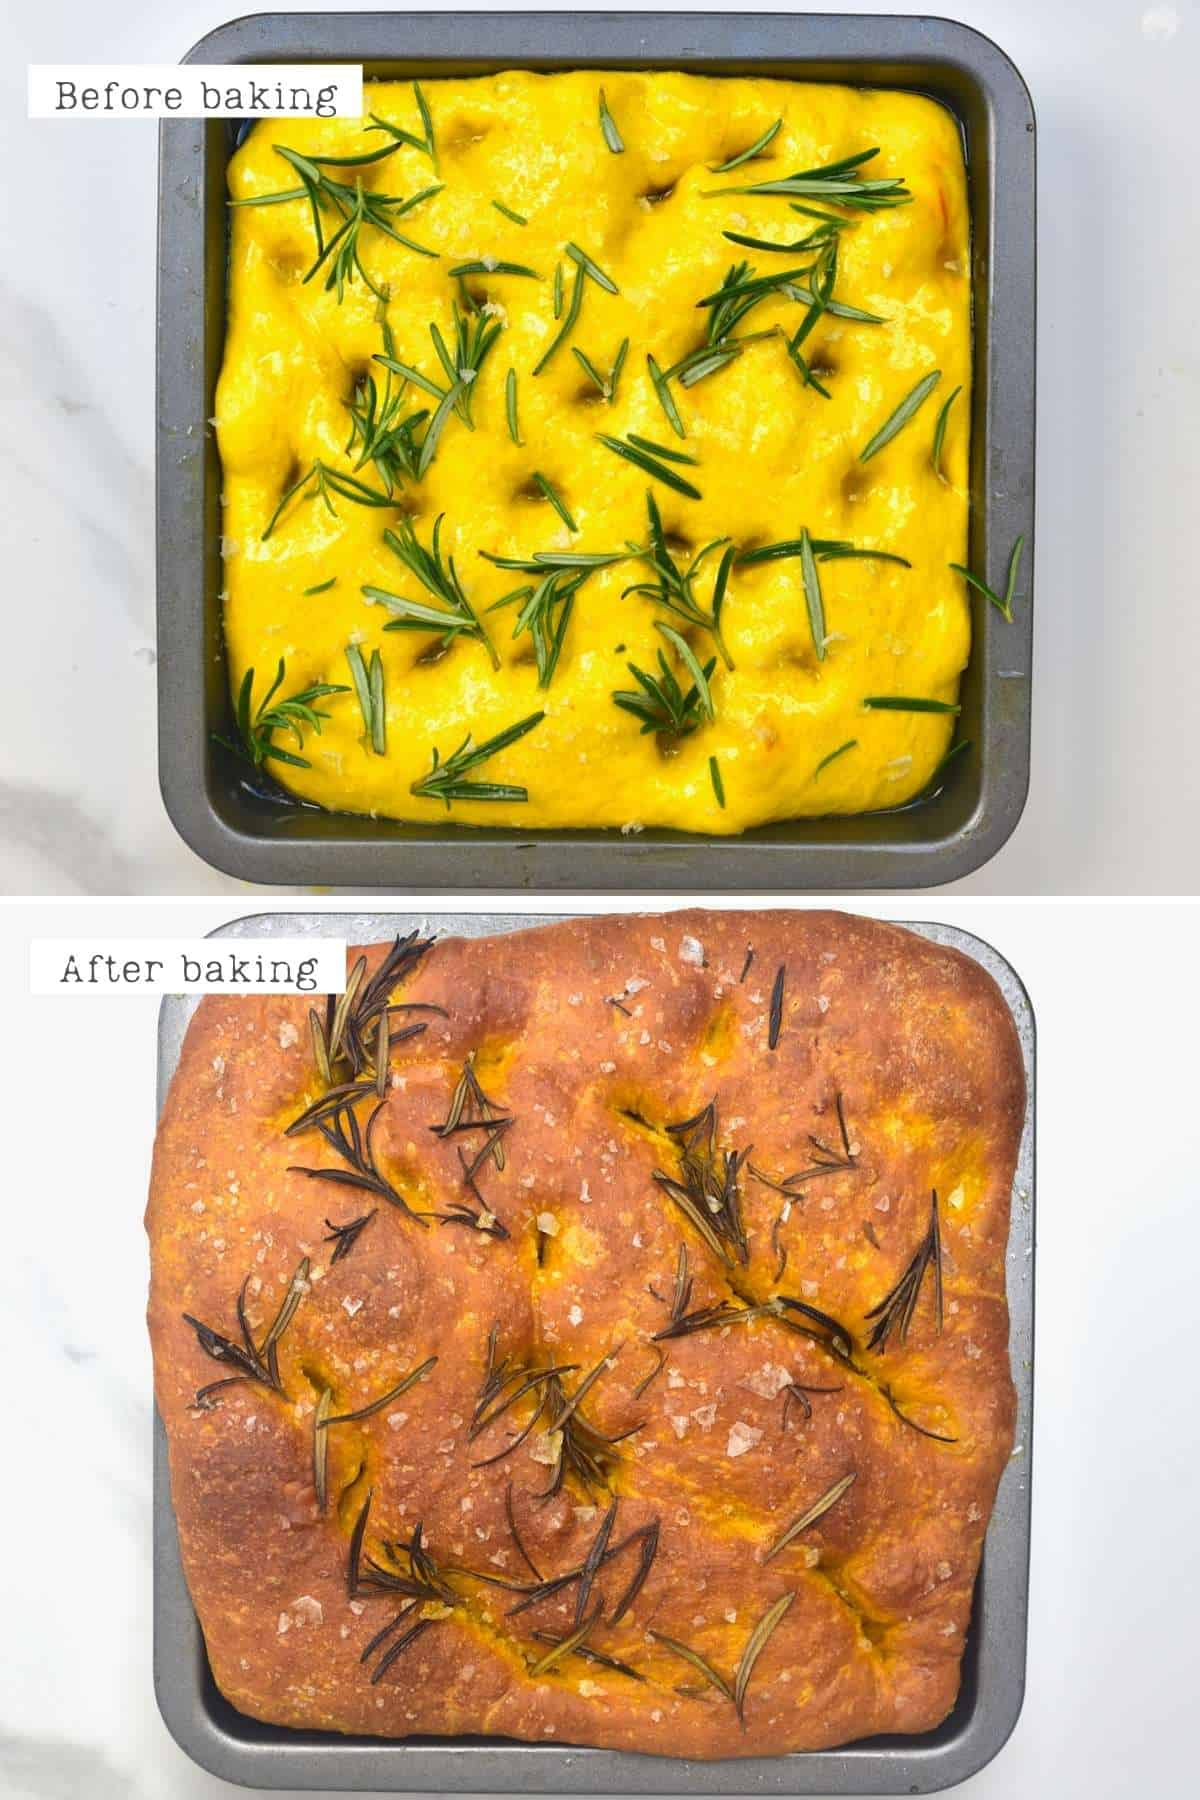 Before and after baking turmeric focaccia